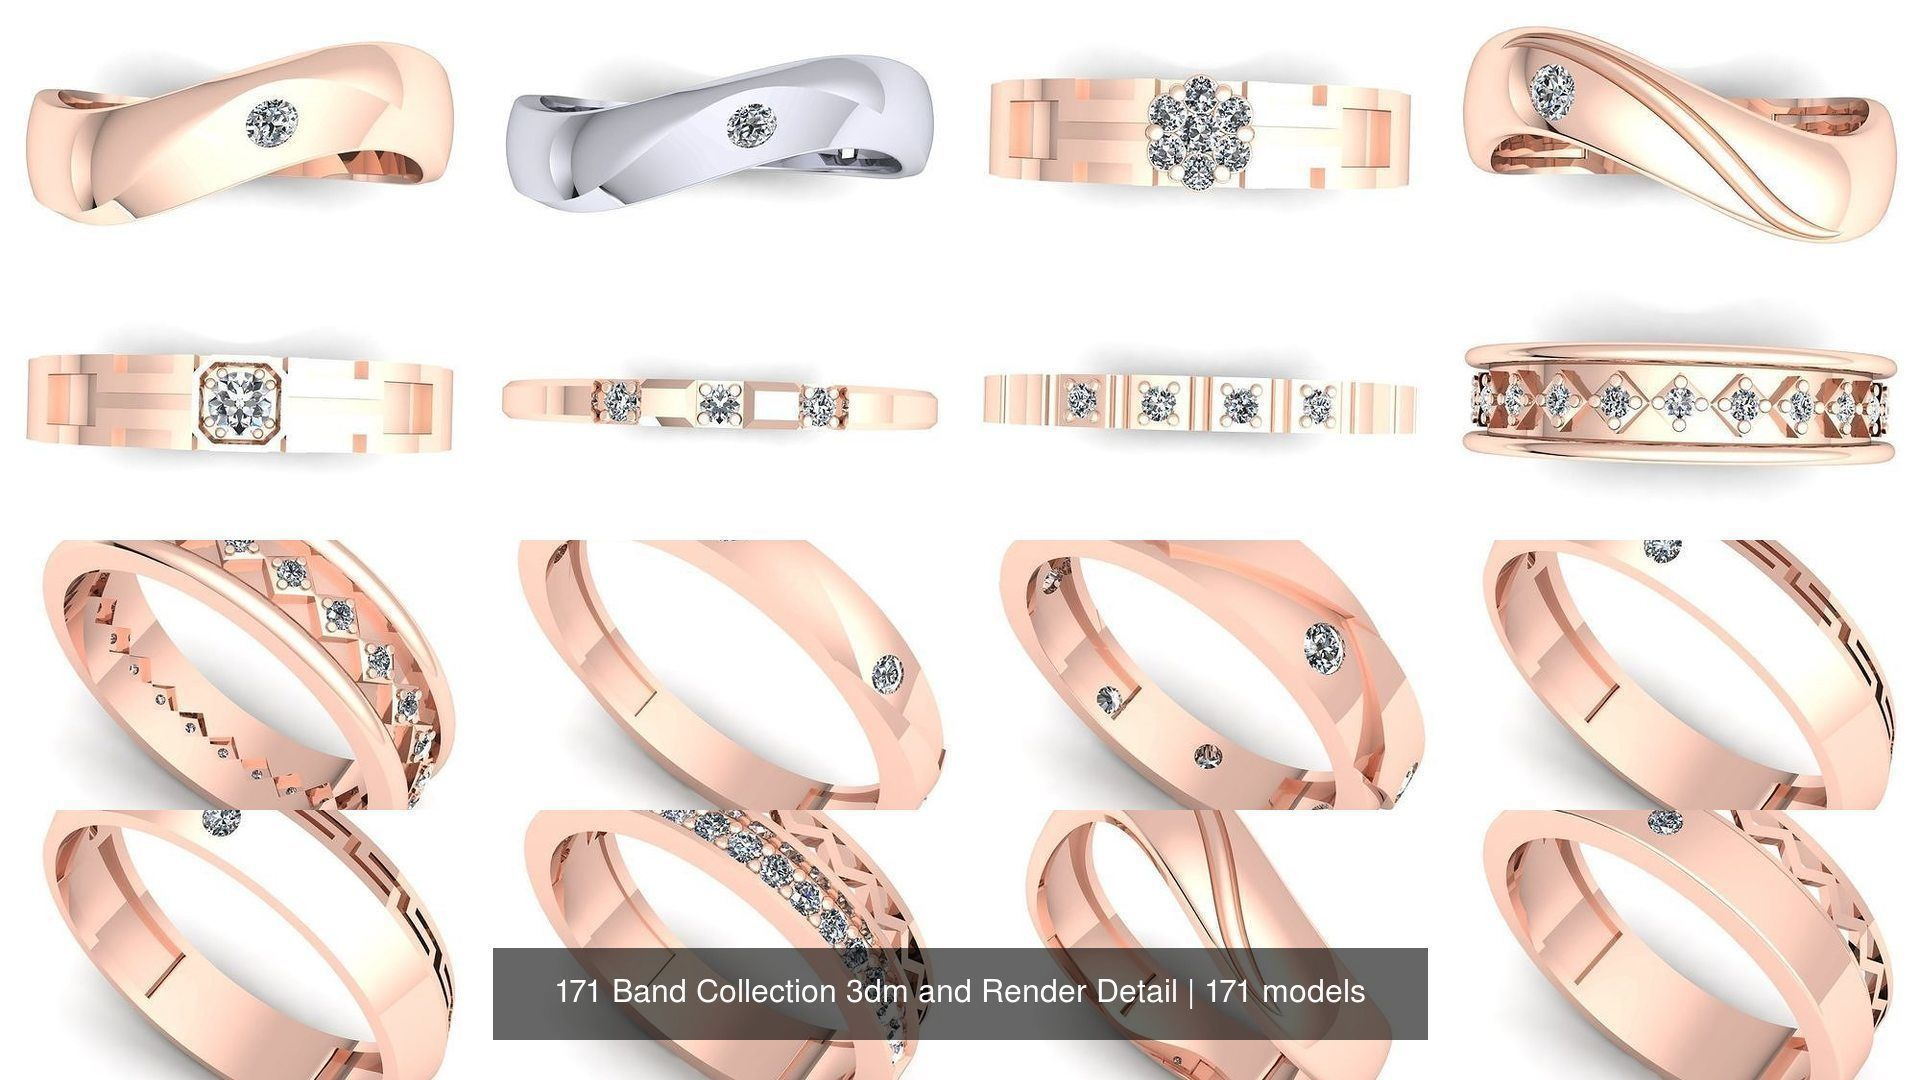 171 Band Collection 3dm and Render Detail